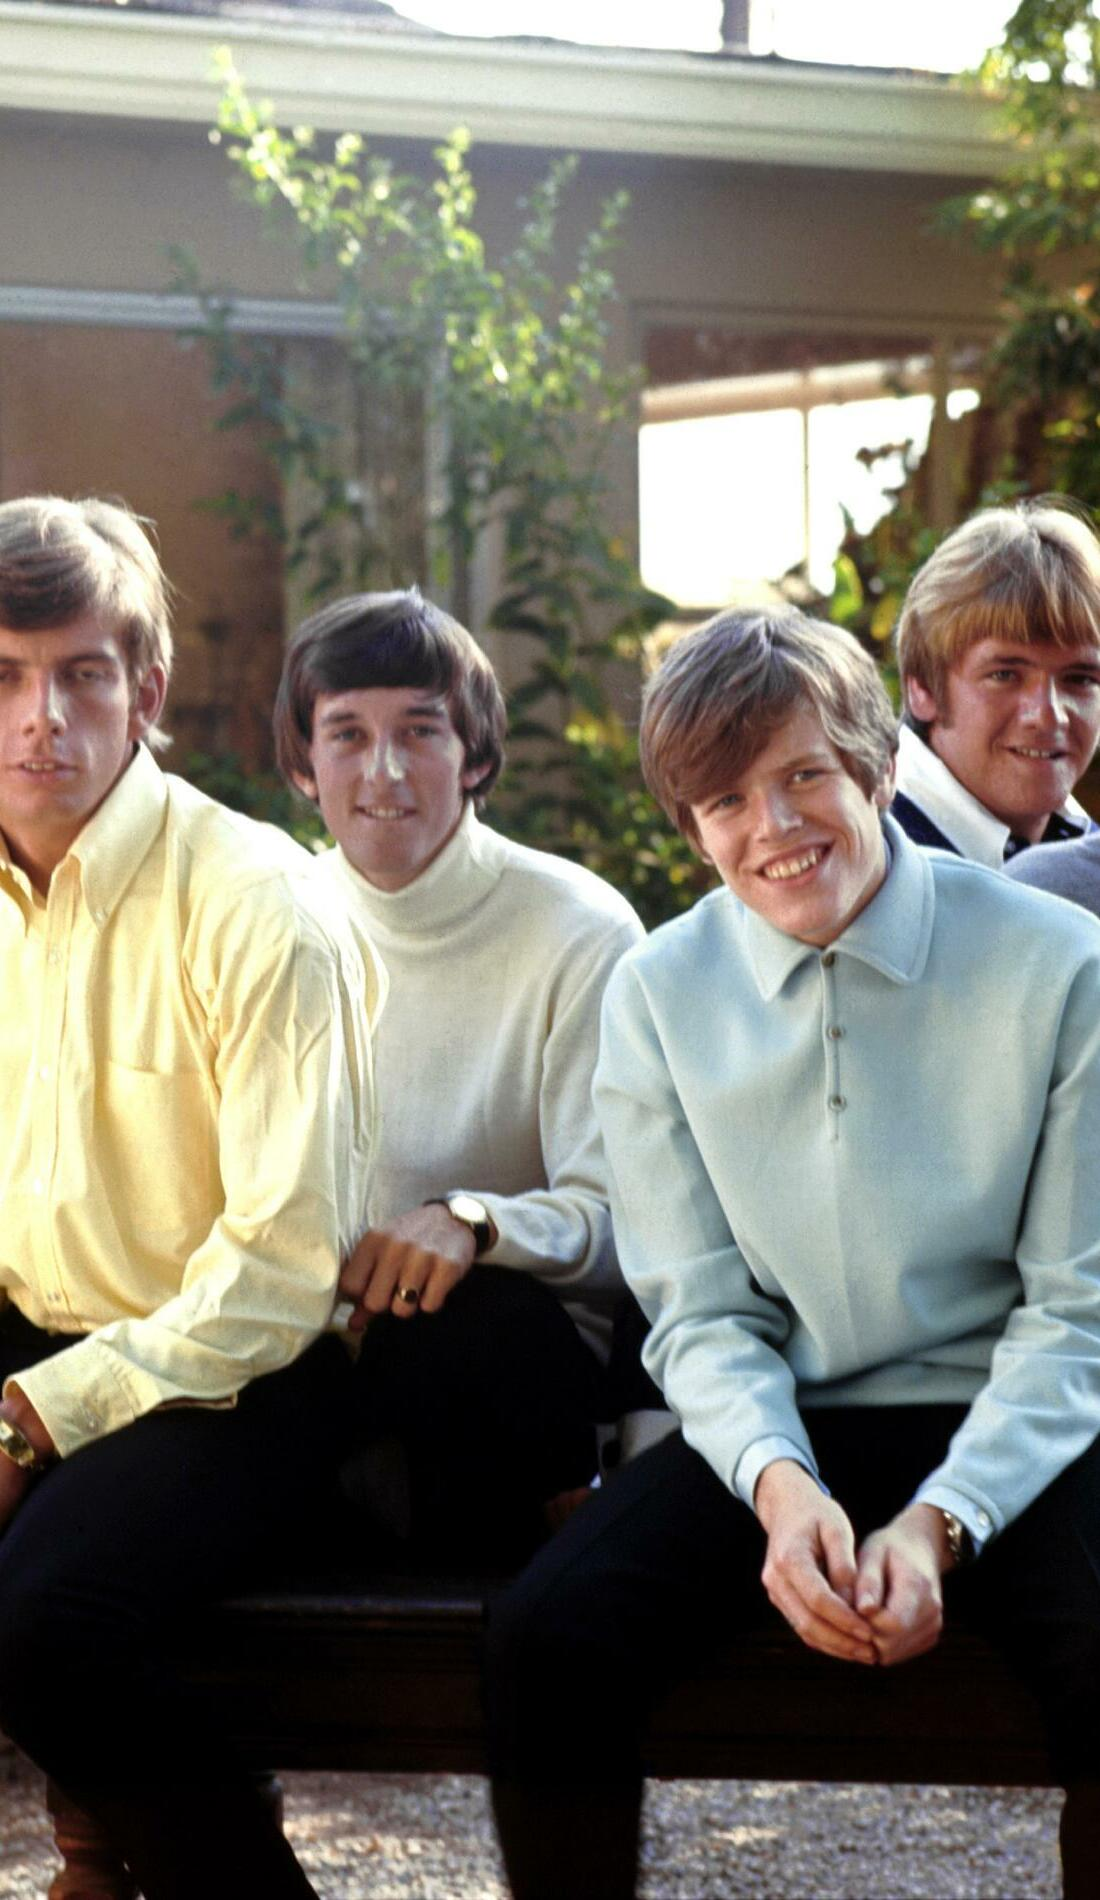 A Herman's Hermits live event